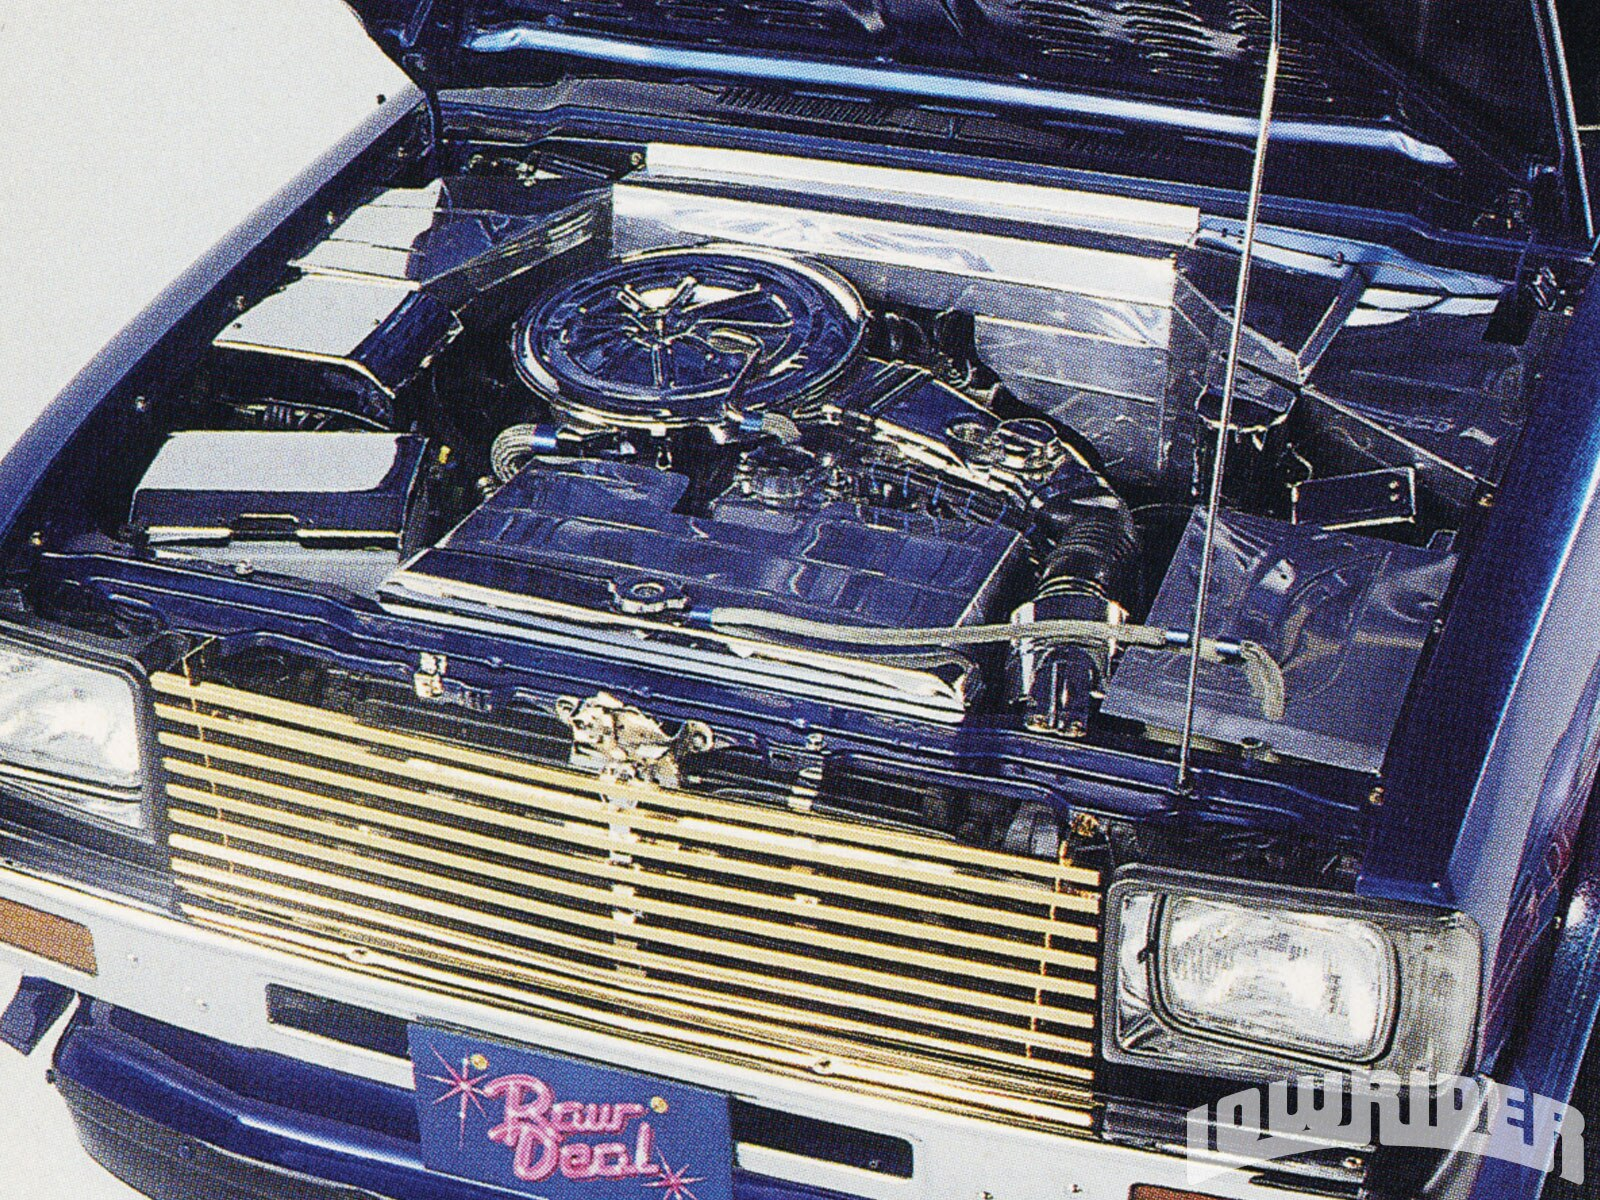 lrmp-1010-08-o-1989-toyota-sr5-truck-polished-engine-bay1